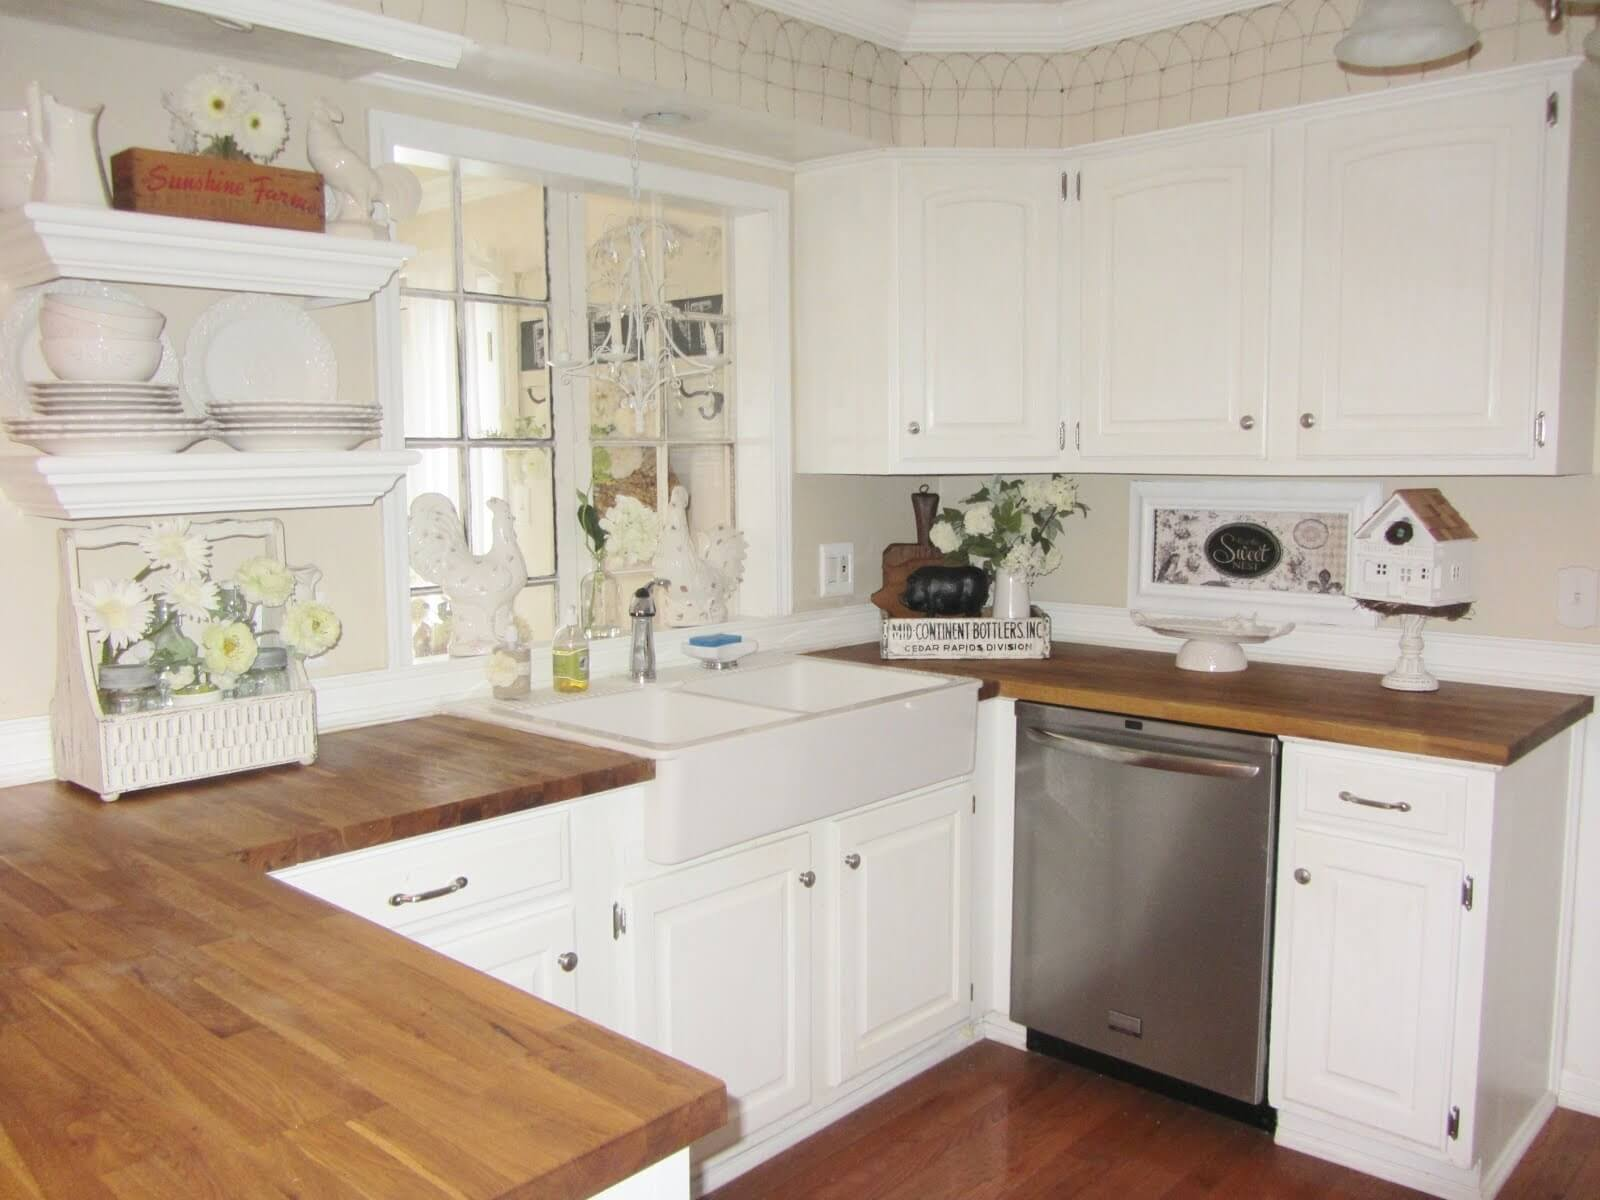 Classic White with Silver Hardware Cabinets